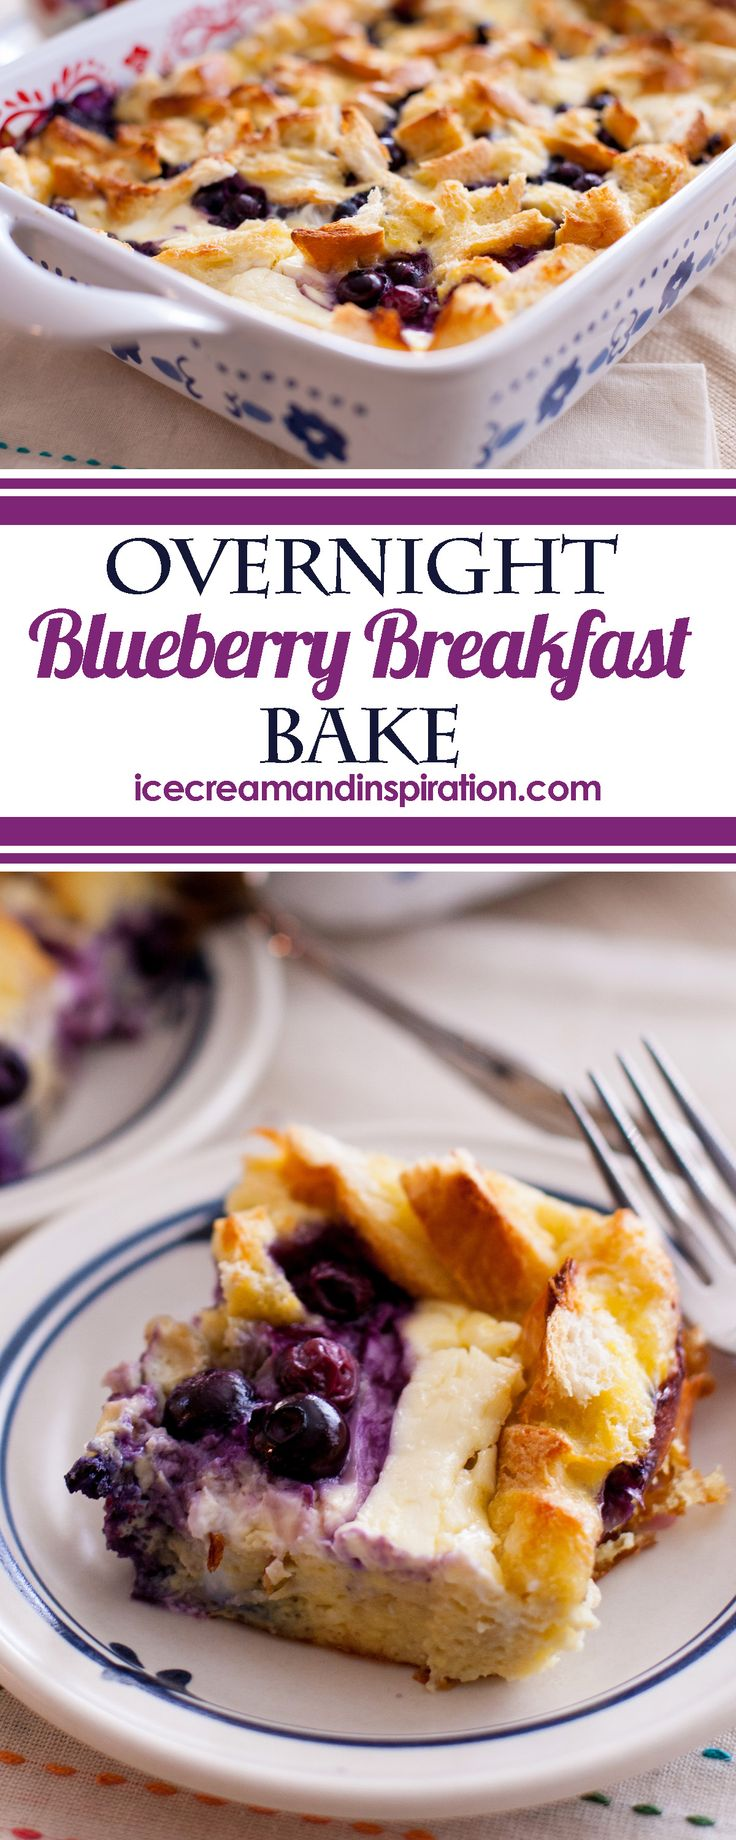 This Overnight Blueberry Breakfast Bake with Maple Cream Syrup is a wonderful low-sugar breakfast! Full of protein and flavor, it's the perfect breakfast for any occasion! Breakfast casserole, overnight breakfast